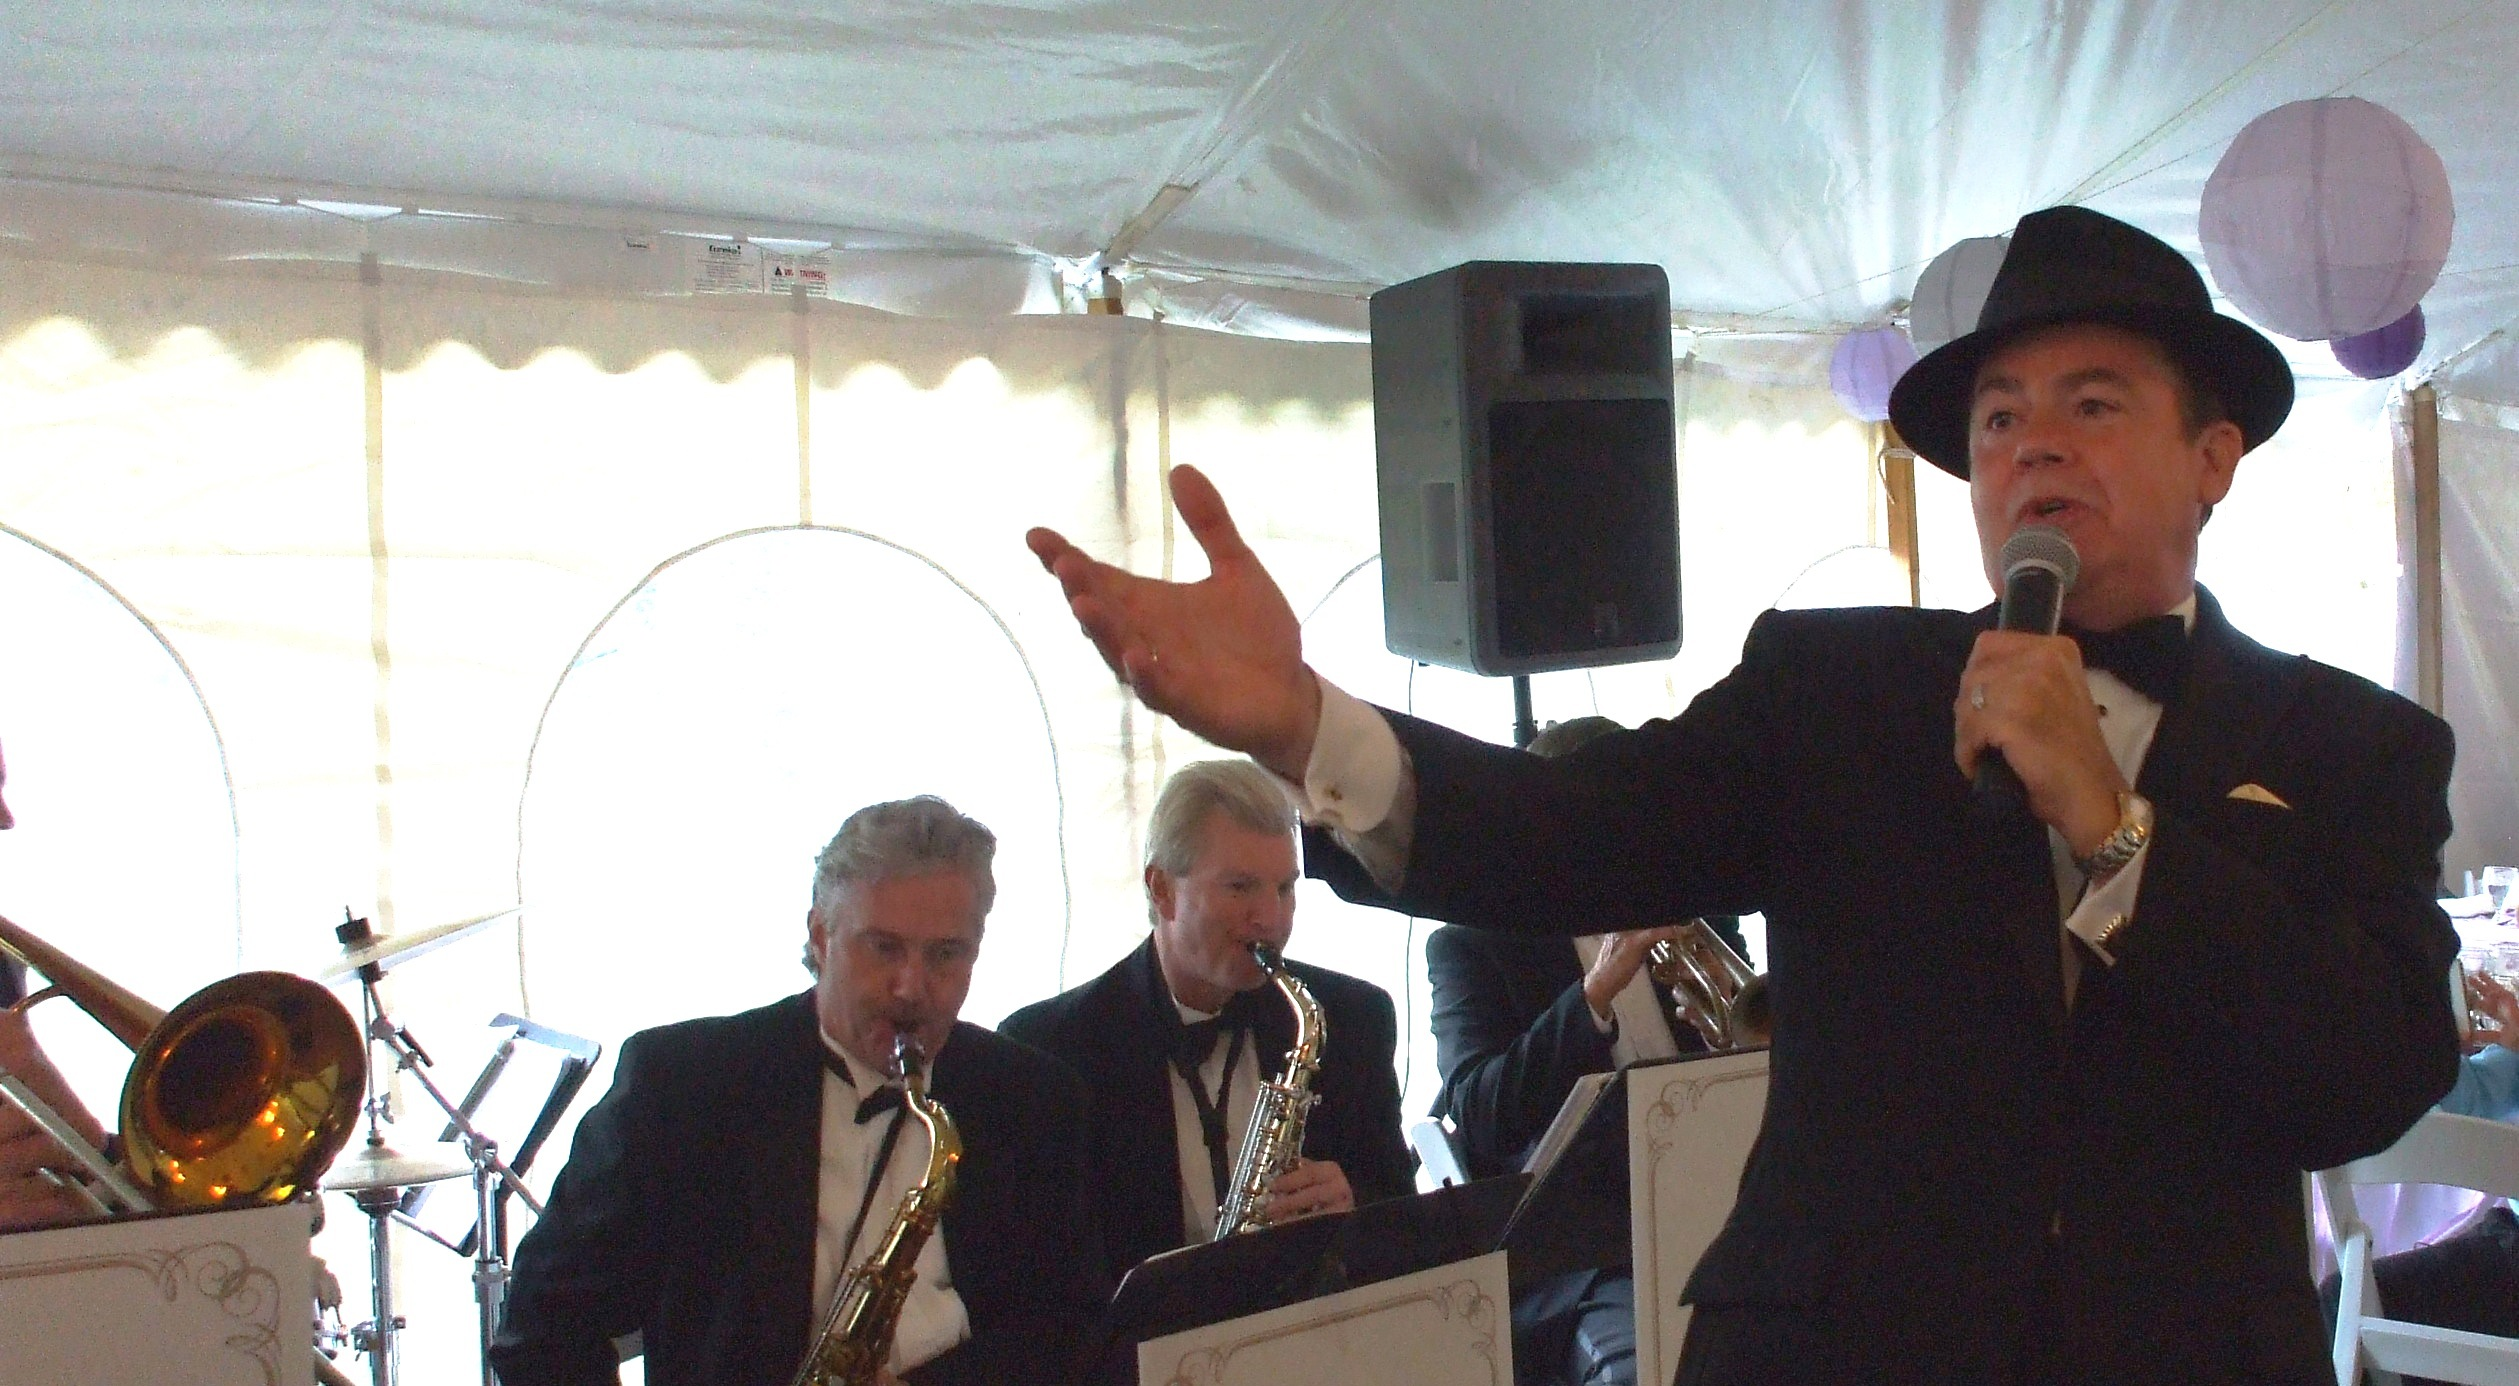 Matt and The Casino Players Orchestra, Traverse City Michigan Wedding Reception